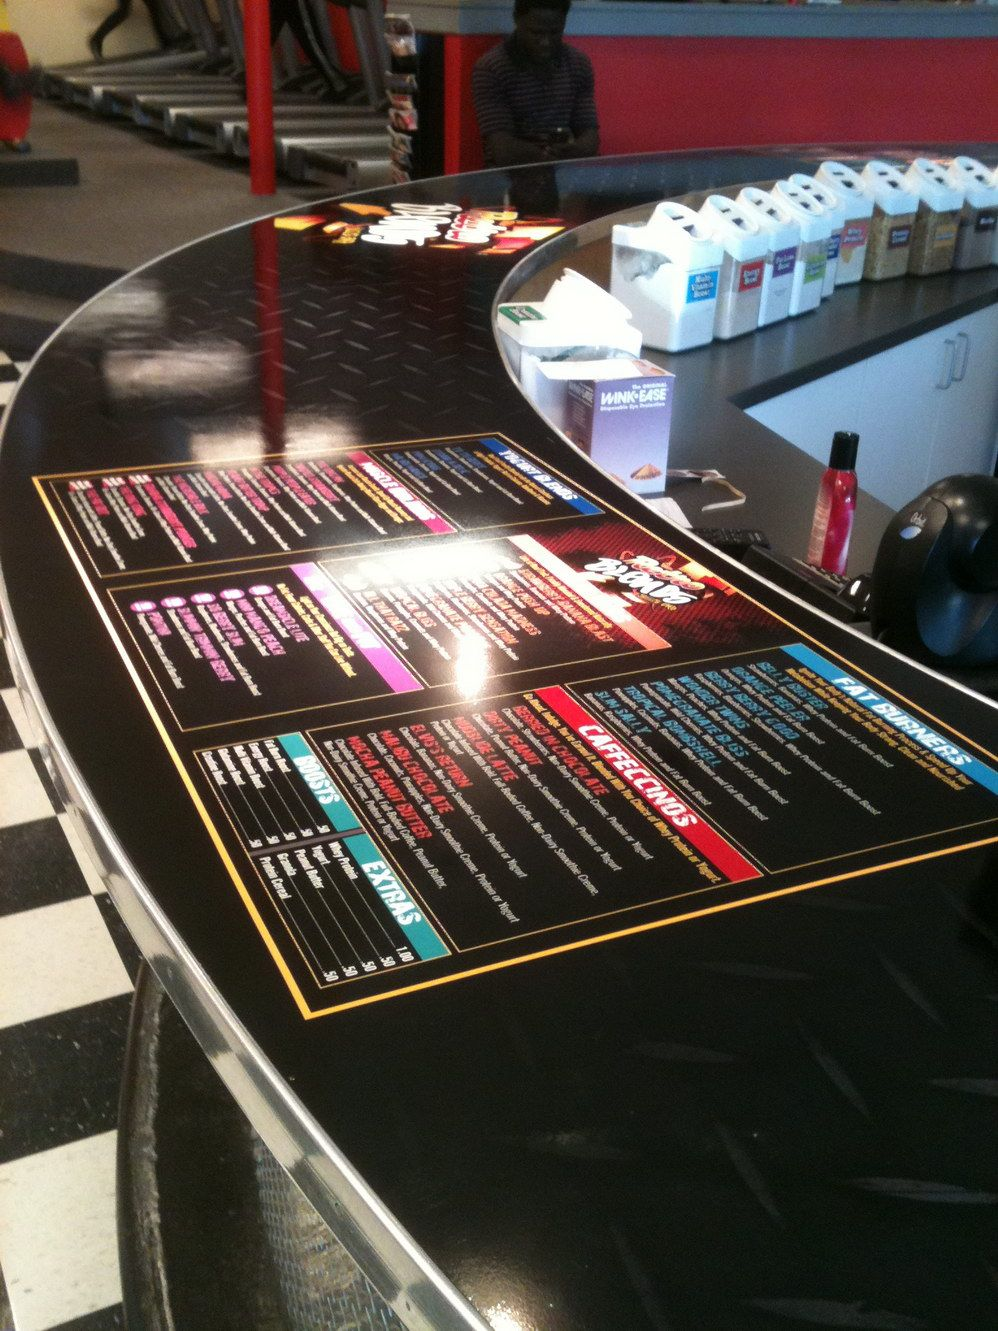 Retro Fitness Counter We used 3MIJ180Cv3 wrap material to wrap this 20′ circular countertop. #coastalsign #counter #3M